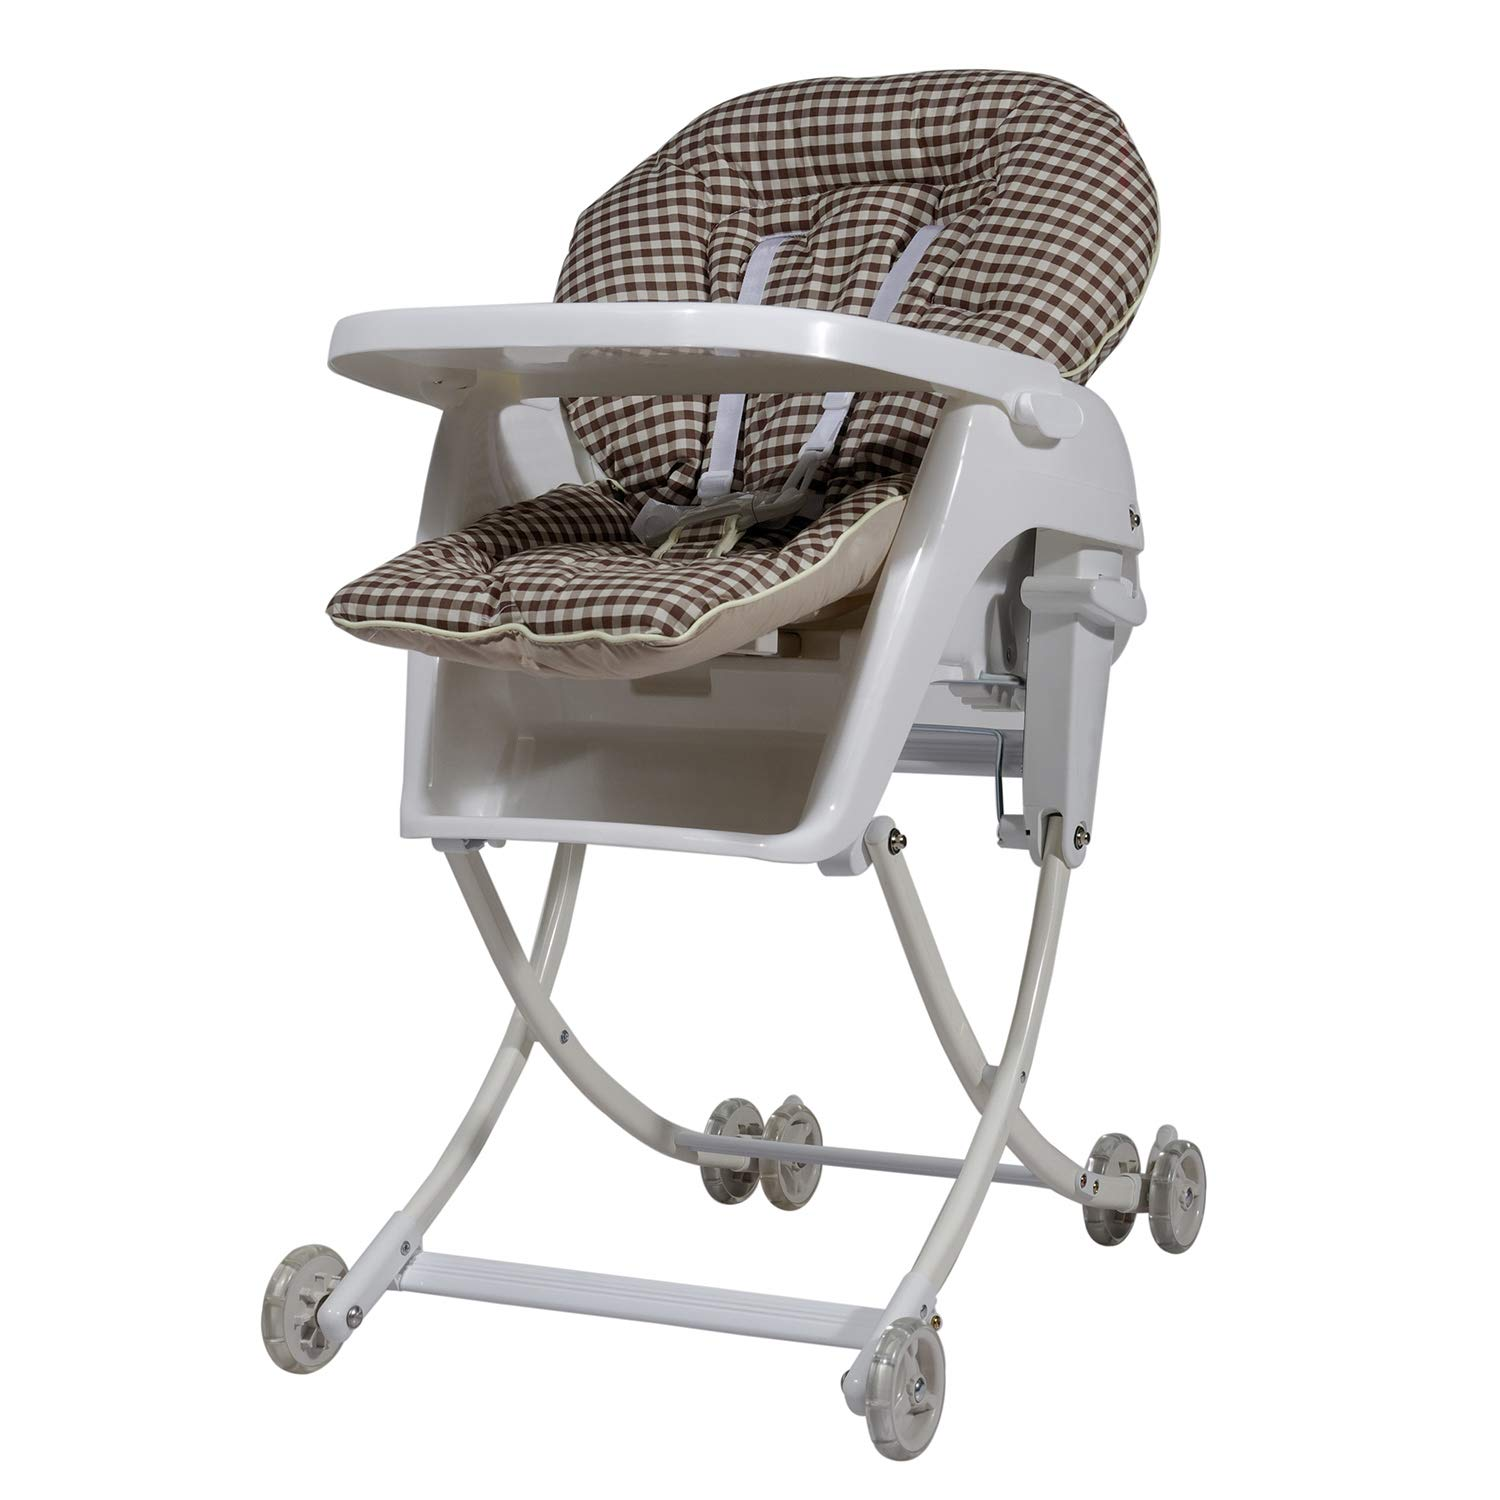 Babycenterindia Royal 4 in 1 High Chair, 6-9 Months (Beige)